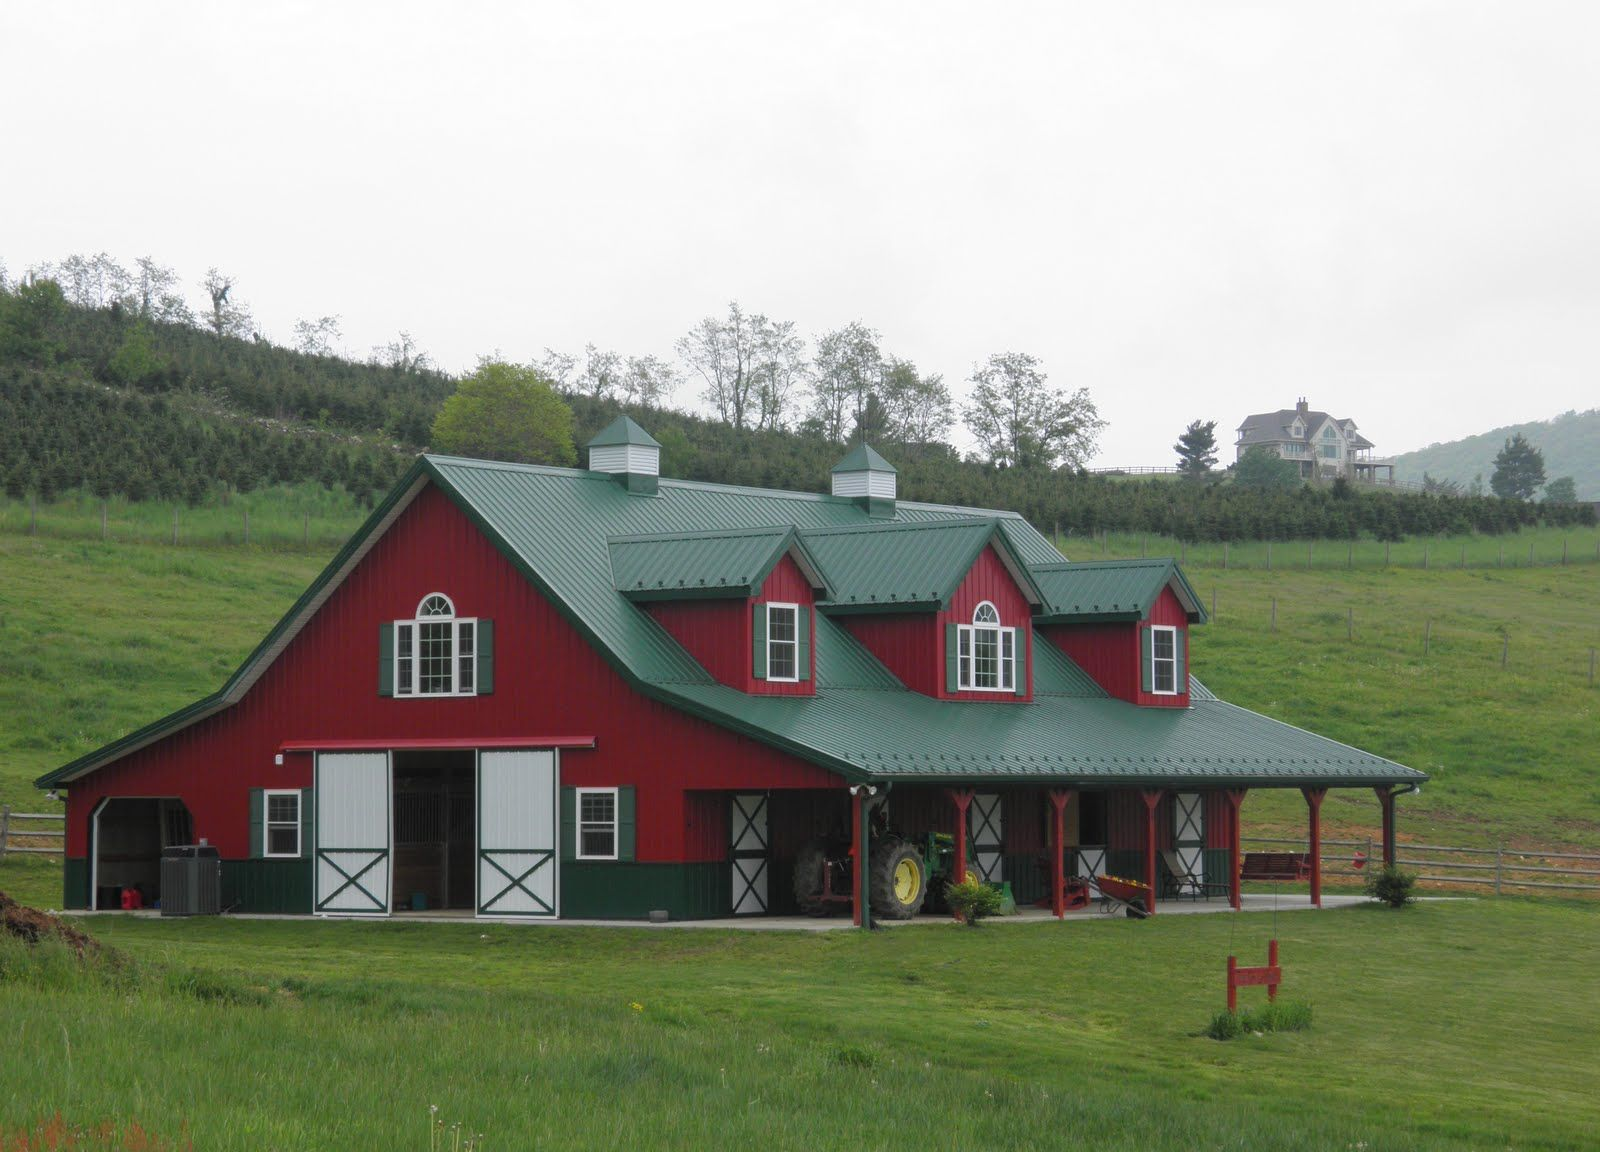 House that looks like red barn images at home in the for Steel home designs